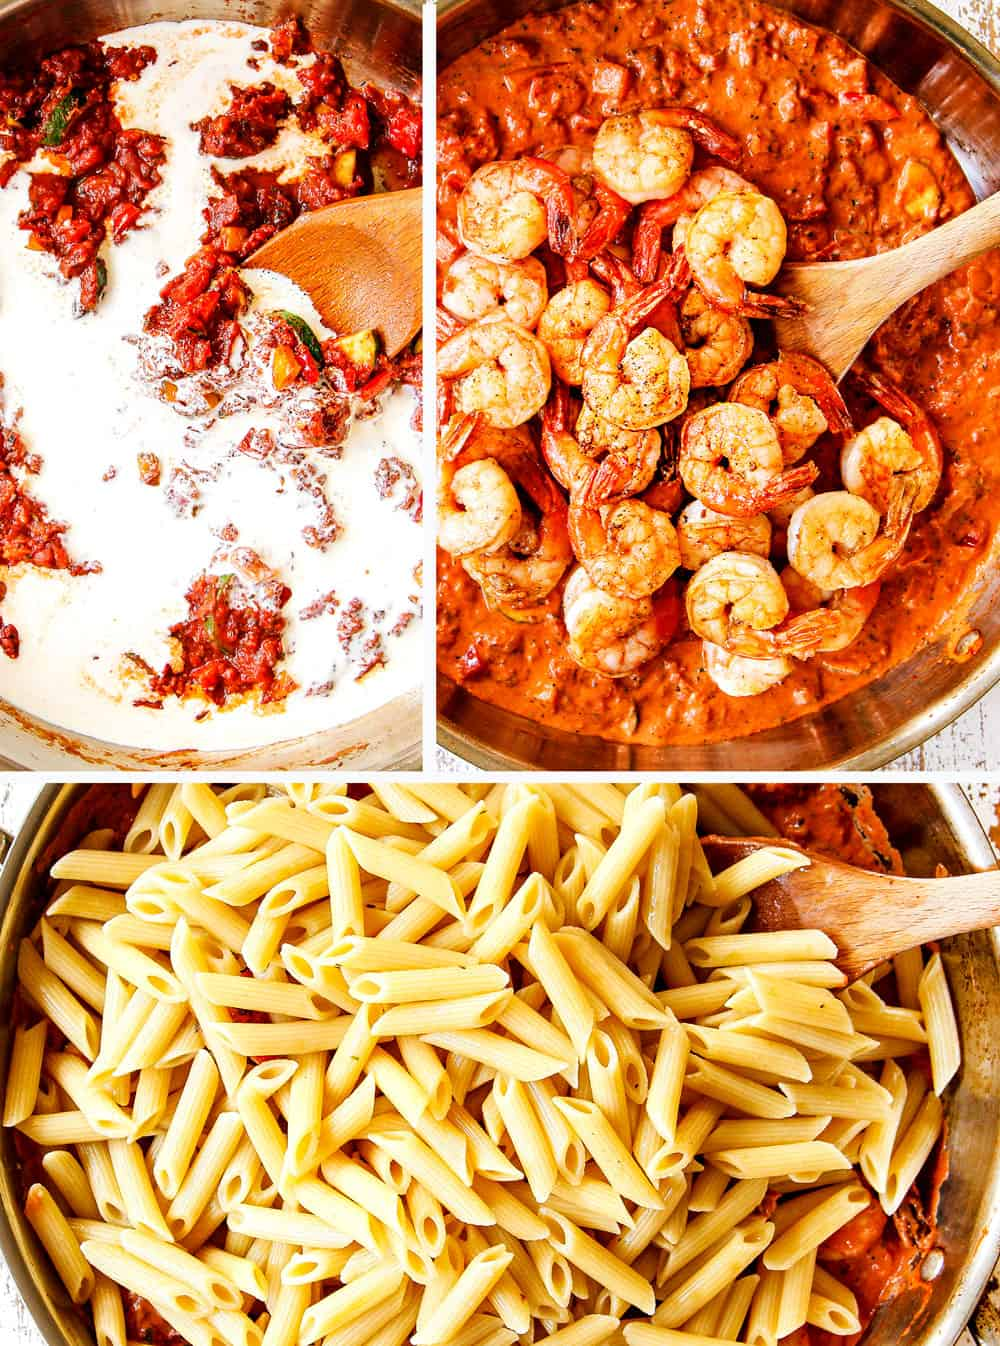 a collage showing how to make shrimp pasta by adding heavy cream, shrimp and pasta to the skillet